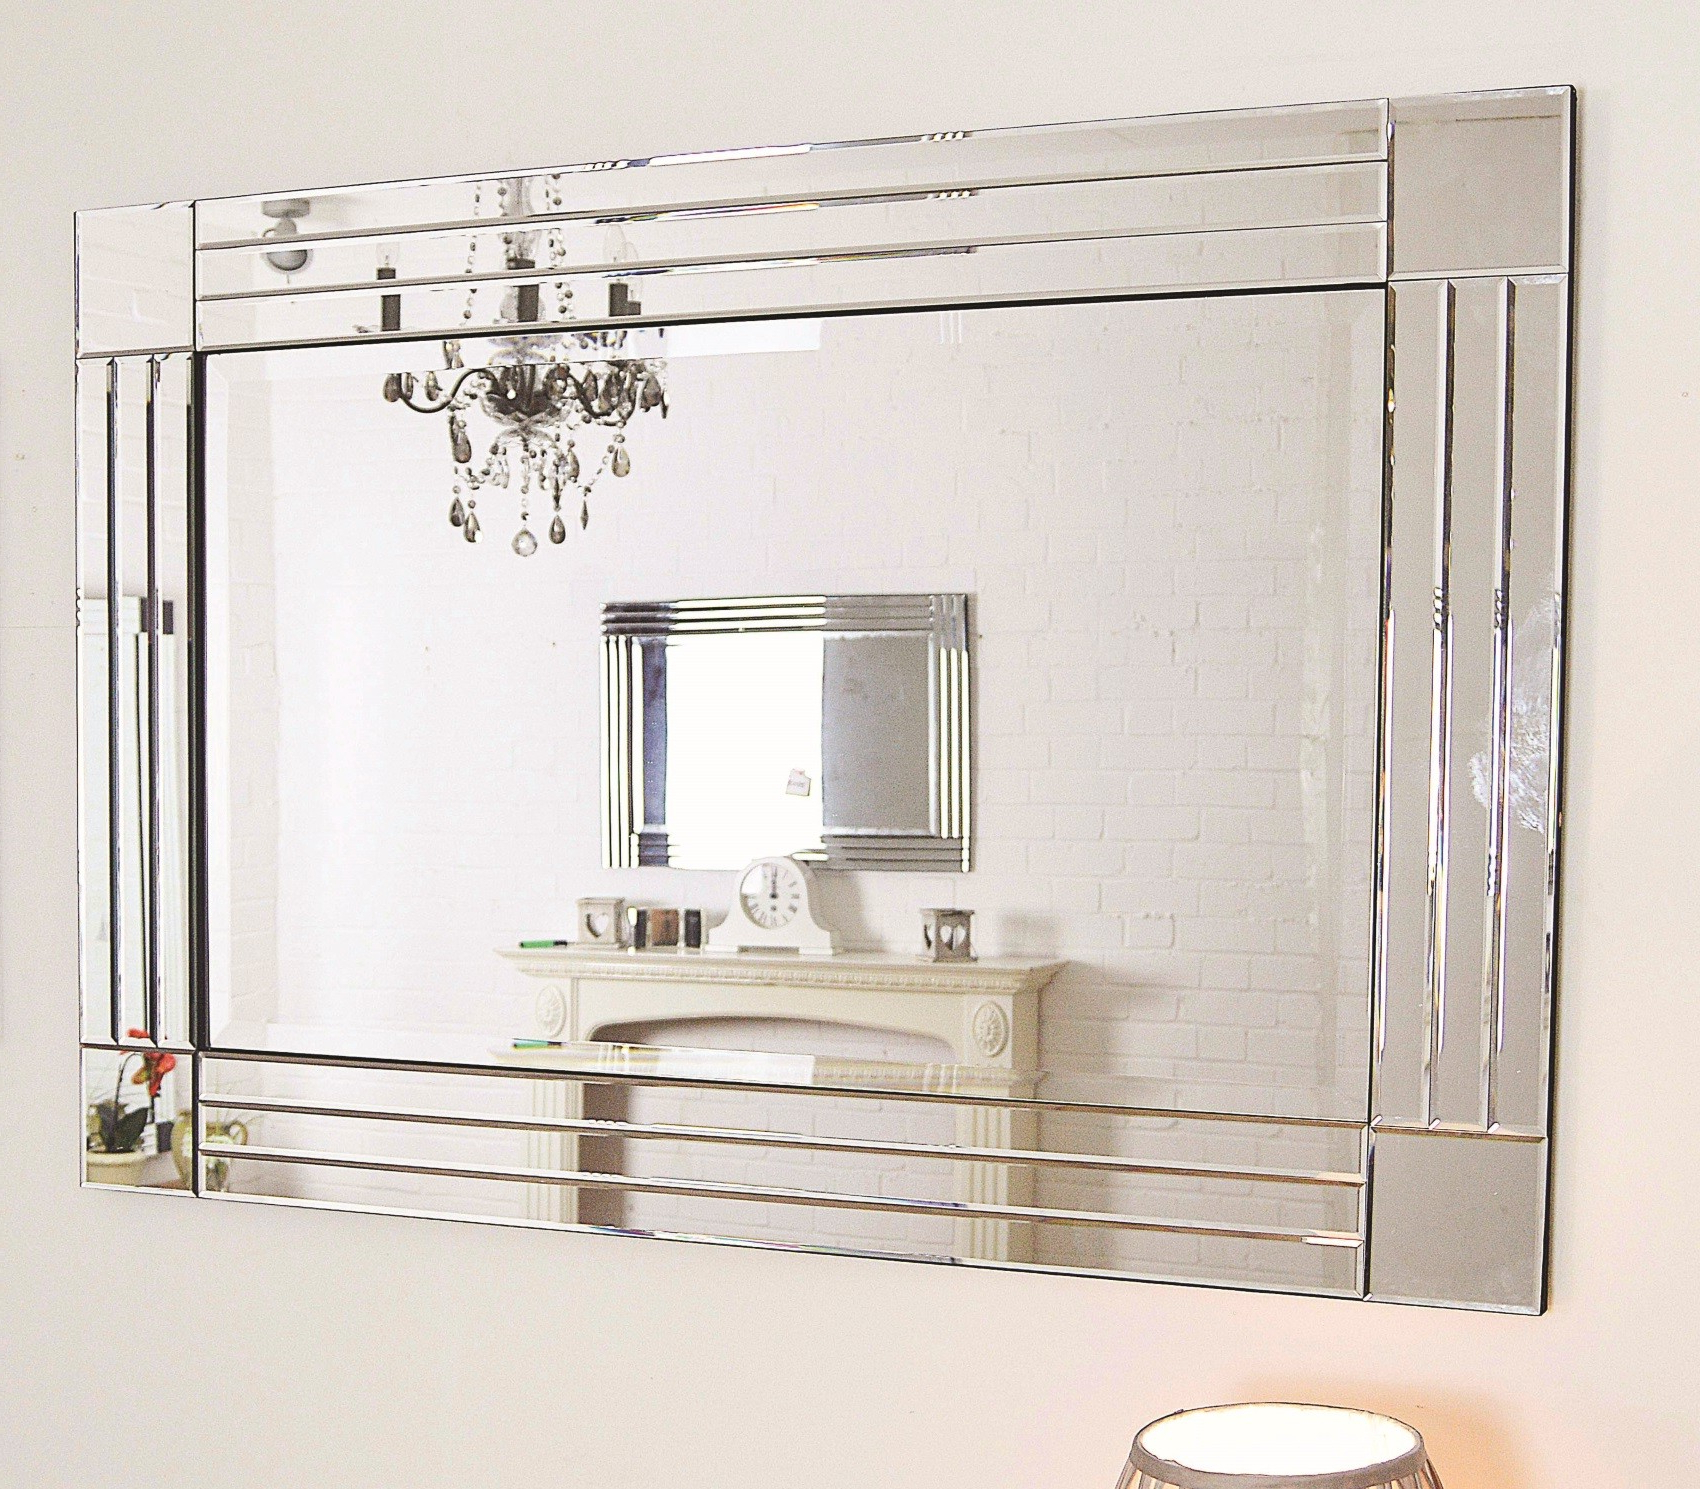 Cheap Big Wall Mirrors Throughout Fashionable Big Wall Mirrors For Cheap – Pmpresssecretariat (View 3 of 20)